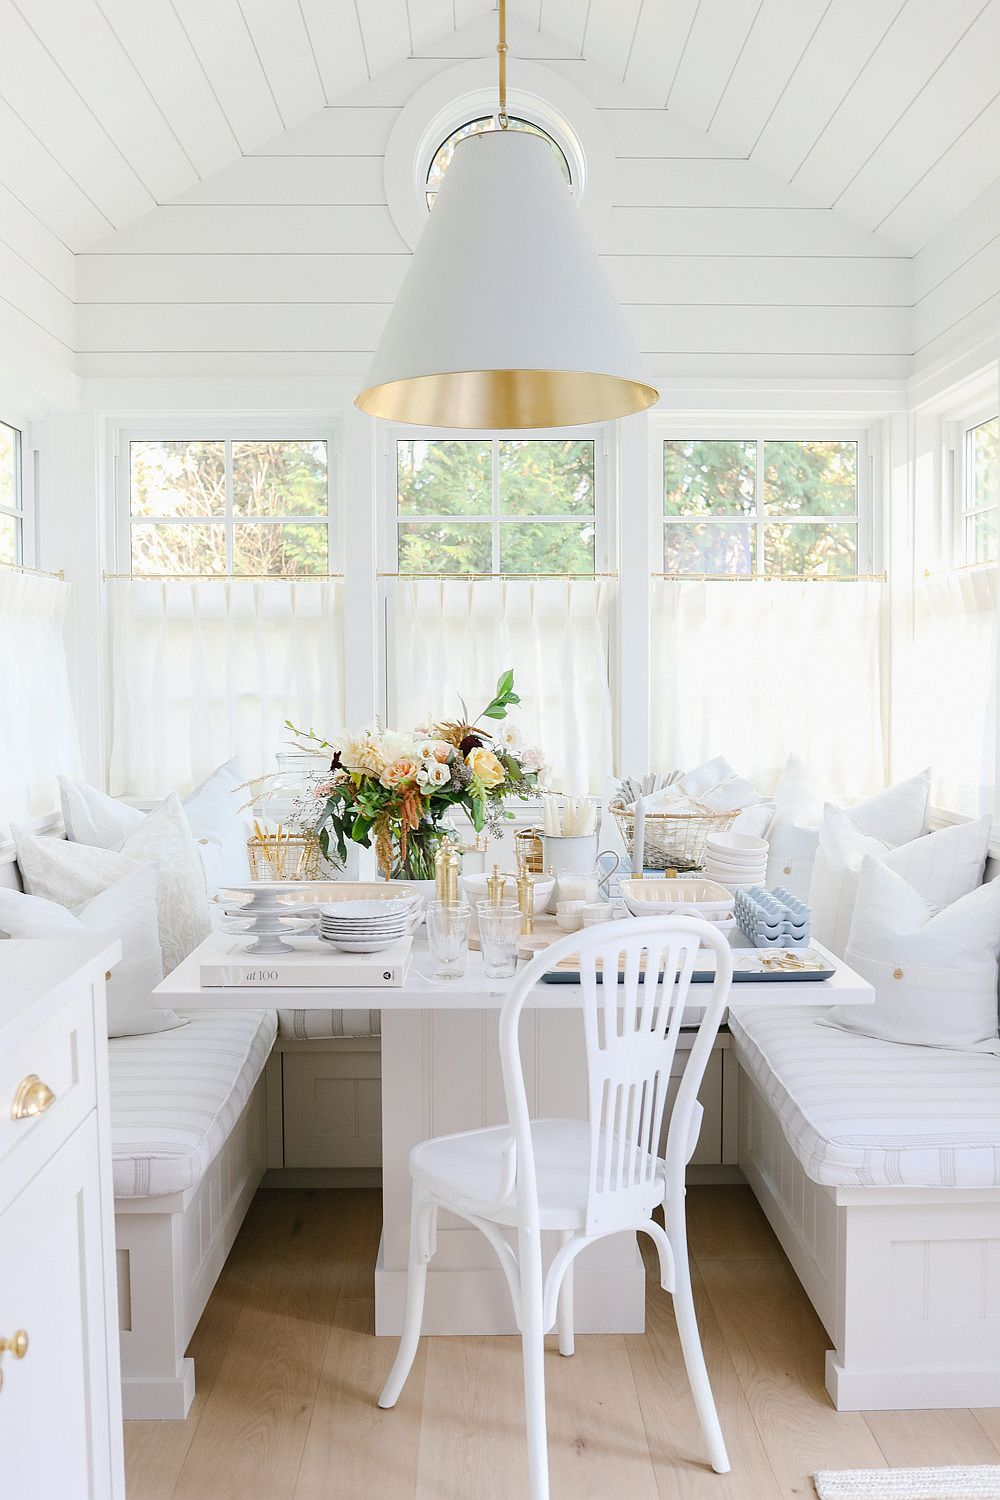 Banquette style seating for the shabby chic dining space that is space-savvy